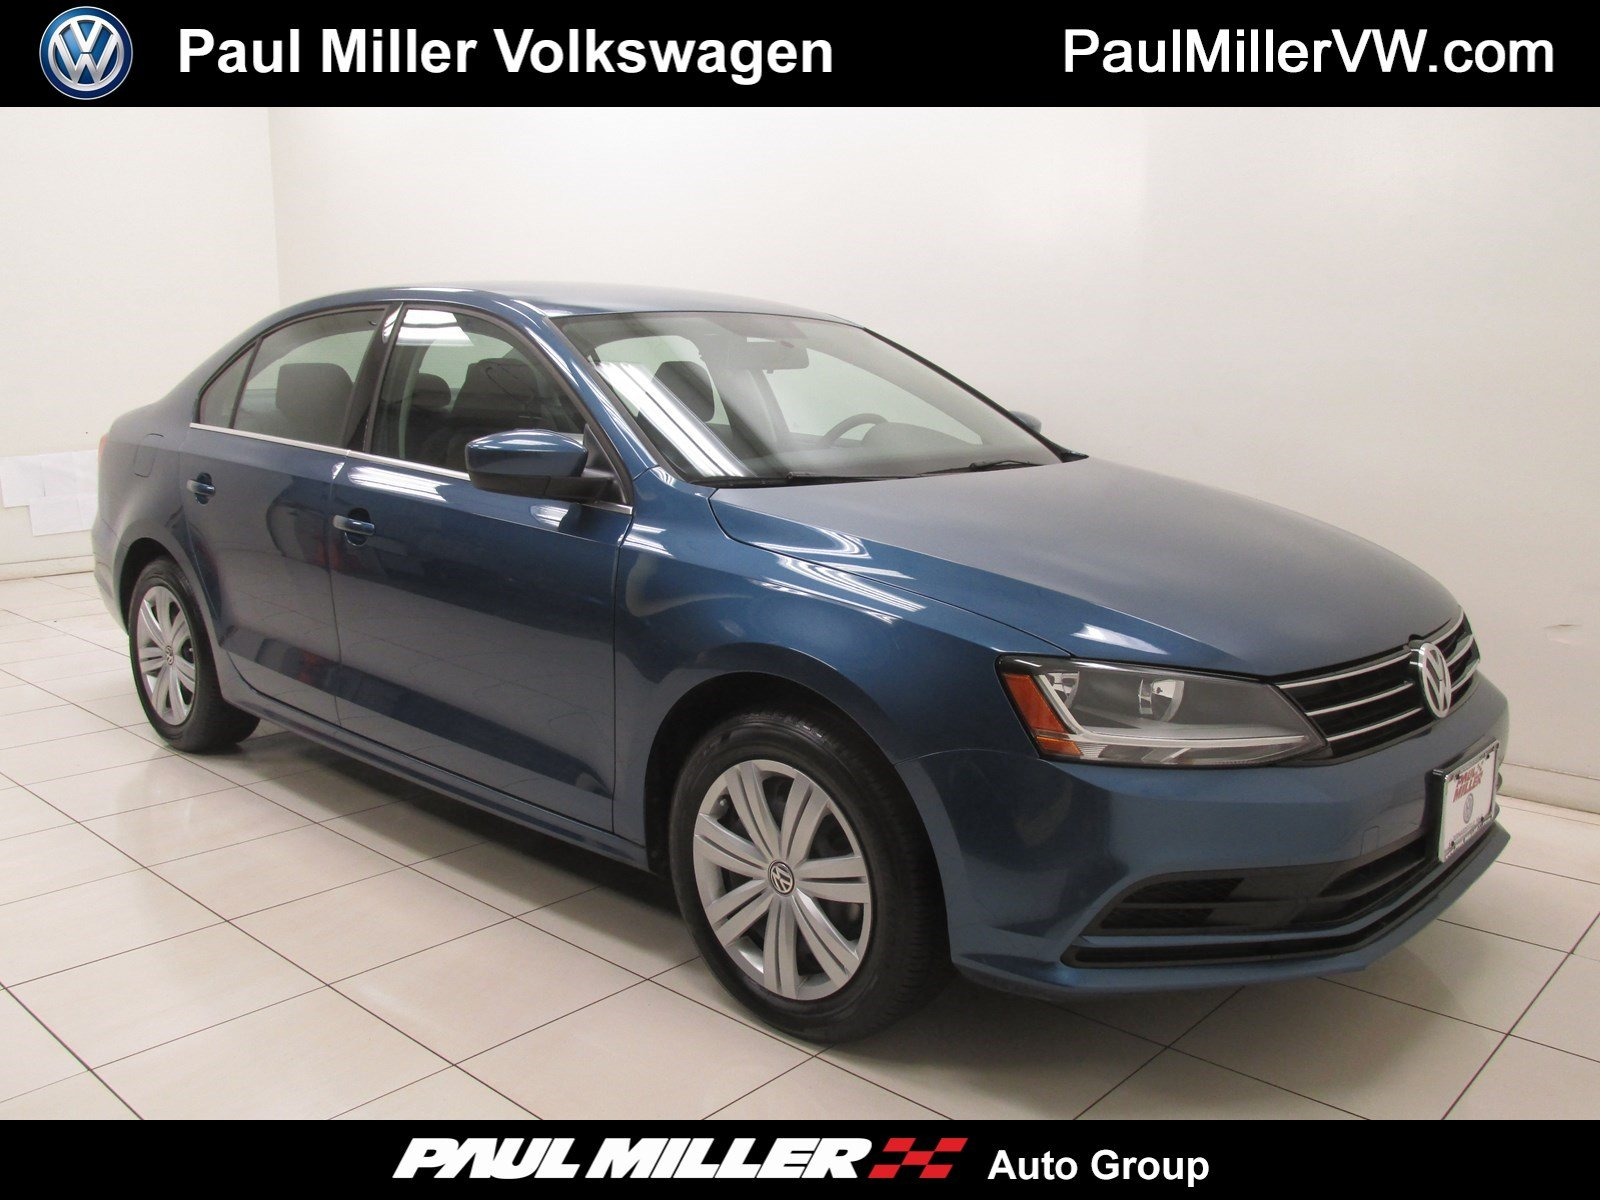 certified pre-owned 2017 volkswagen jetta 1.4t s 4dr car in #6063